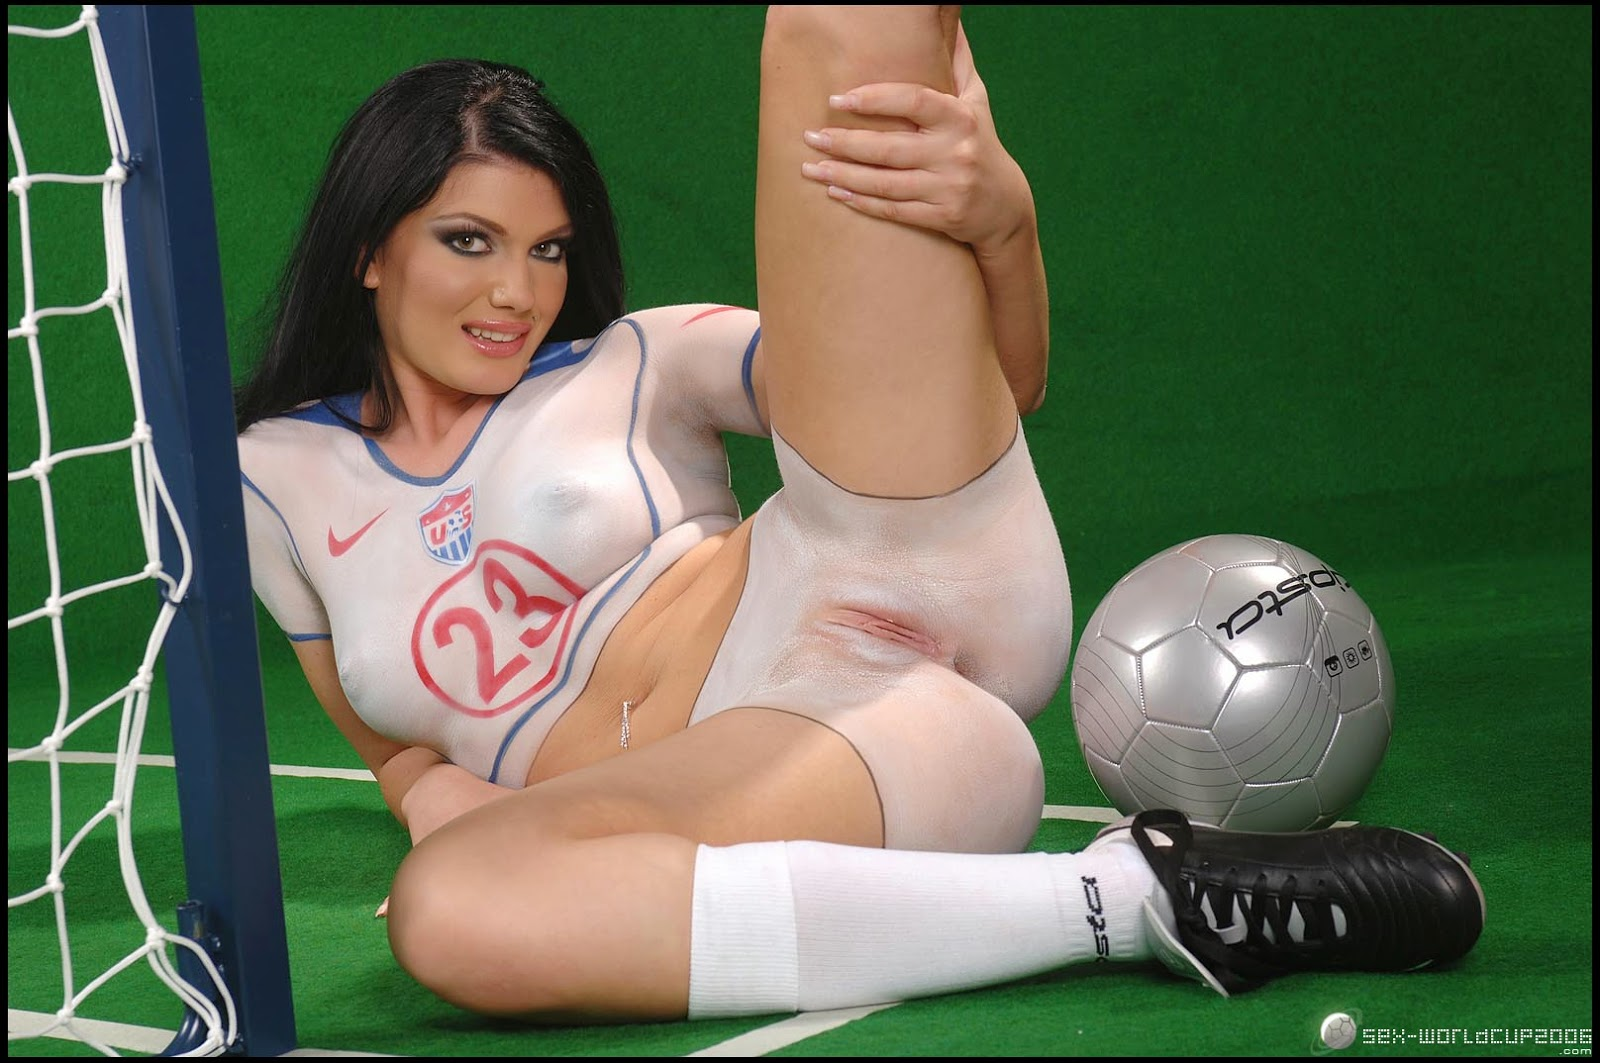 The Porn pics sexy soccer girl can